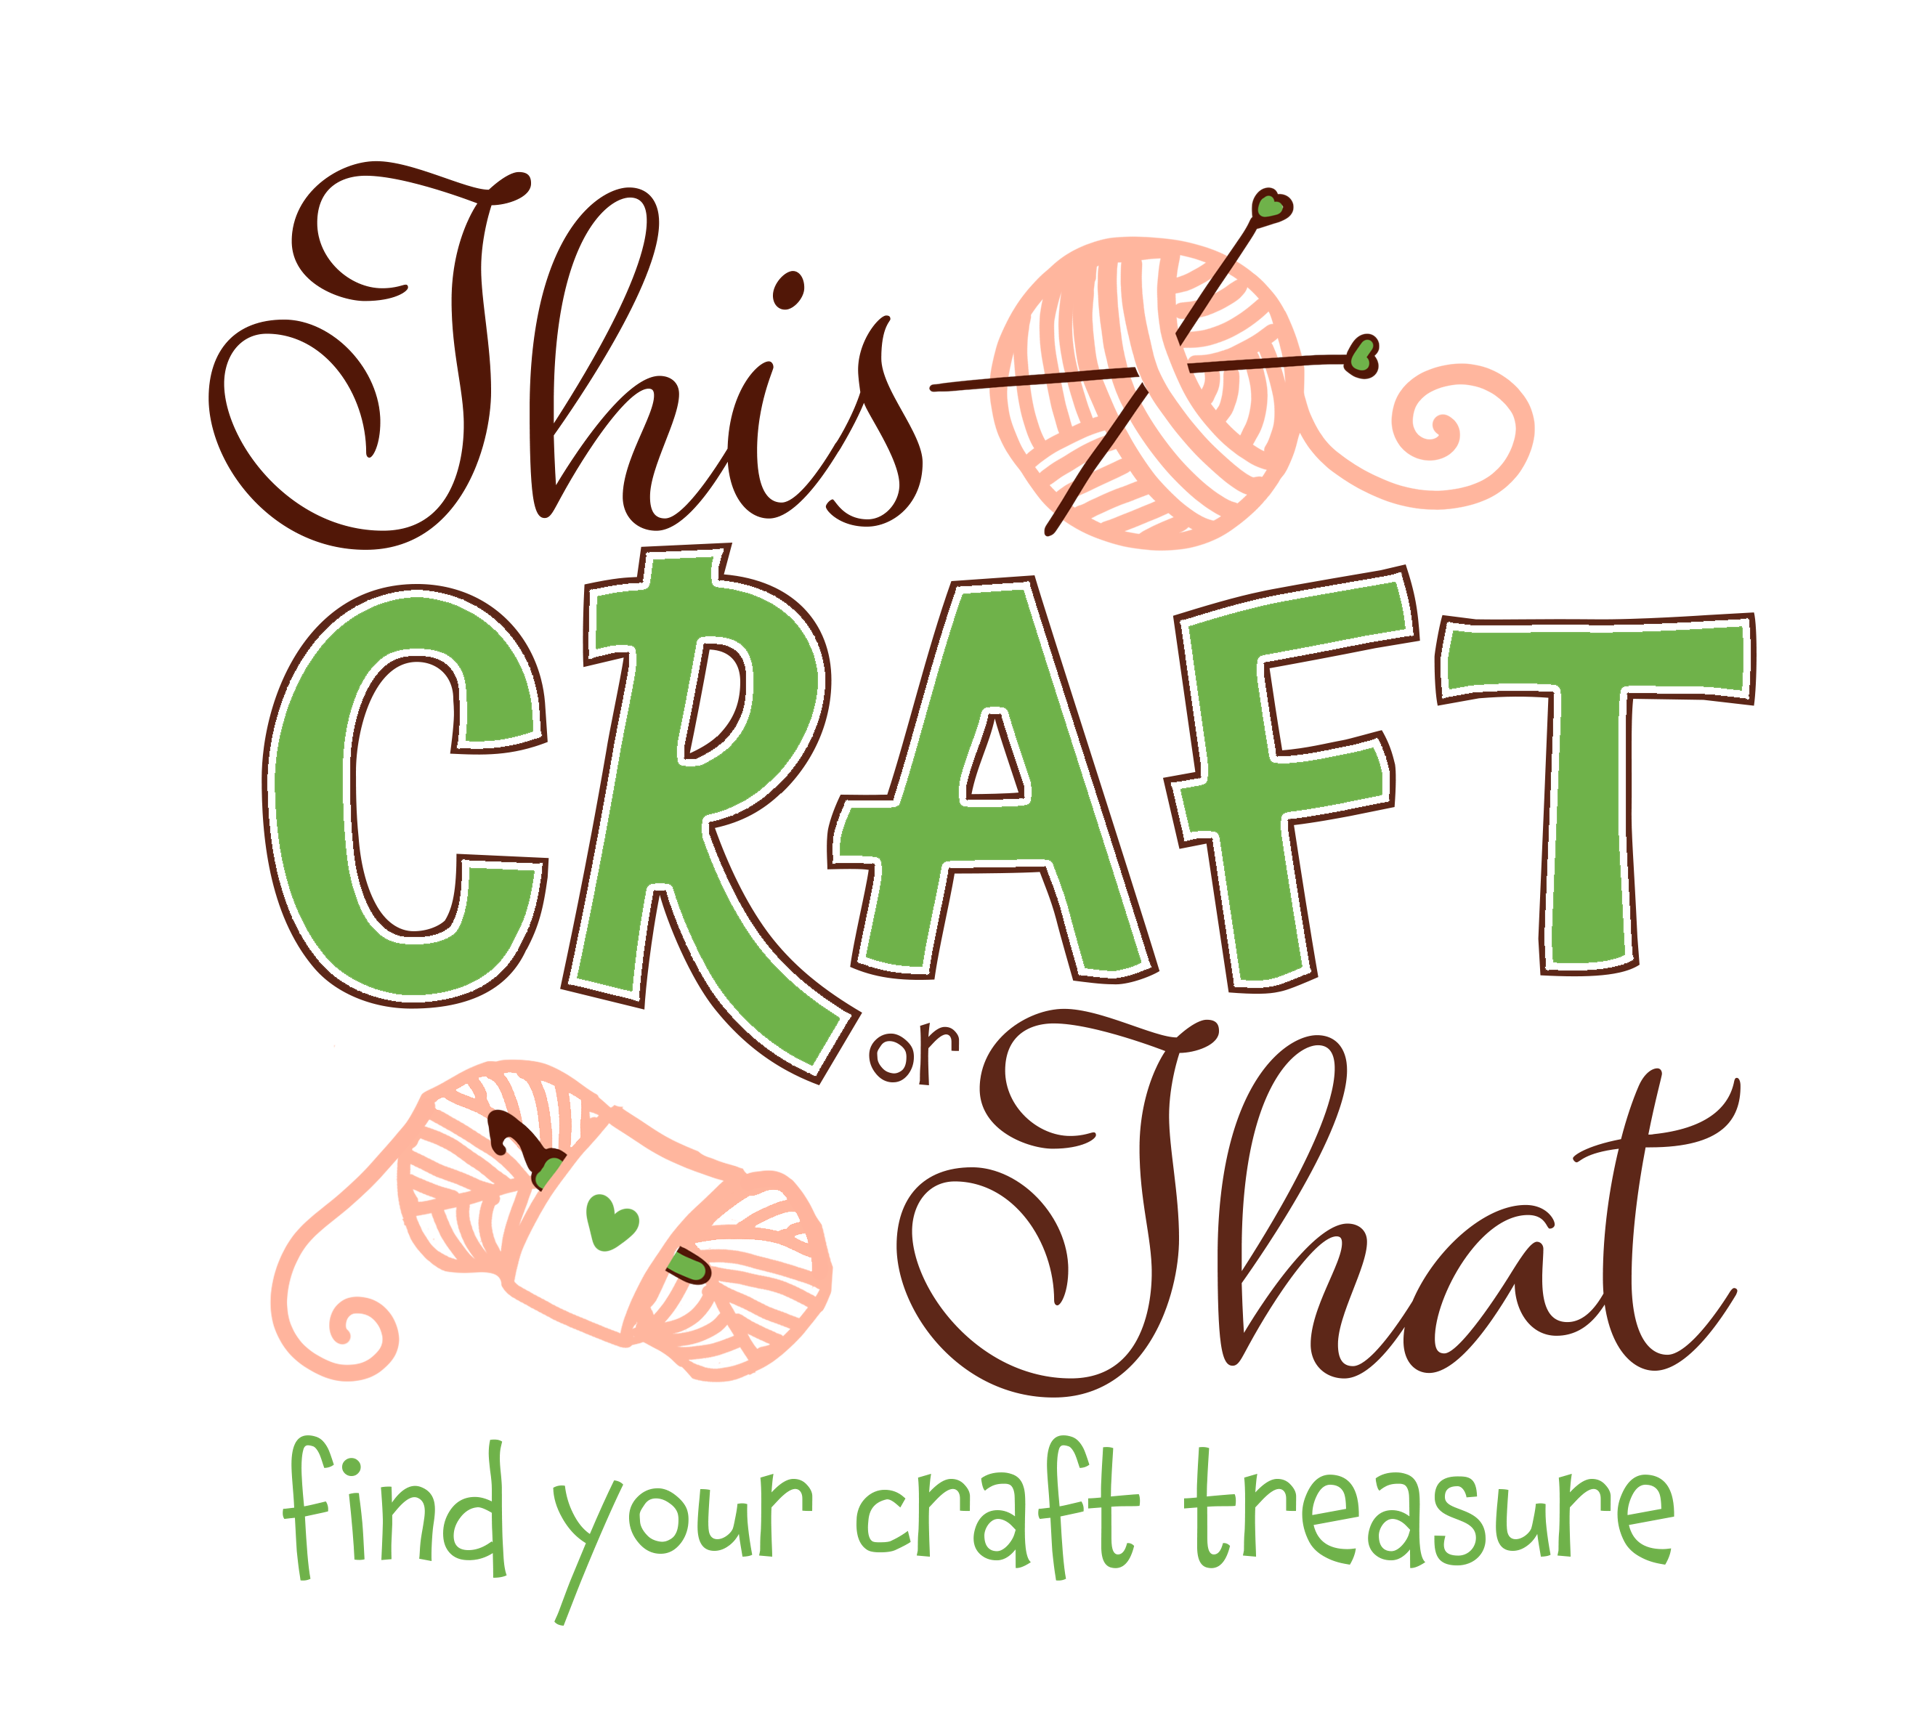 This Craft or That